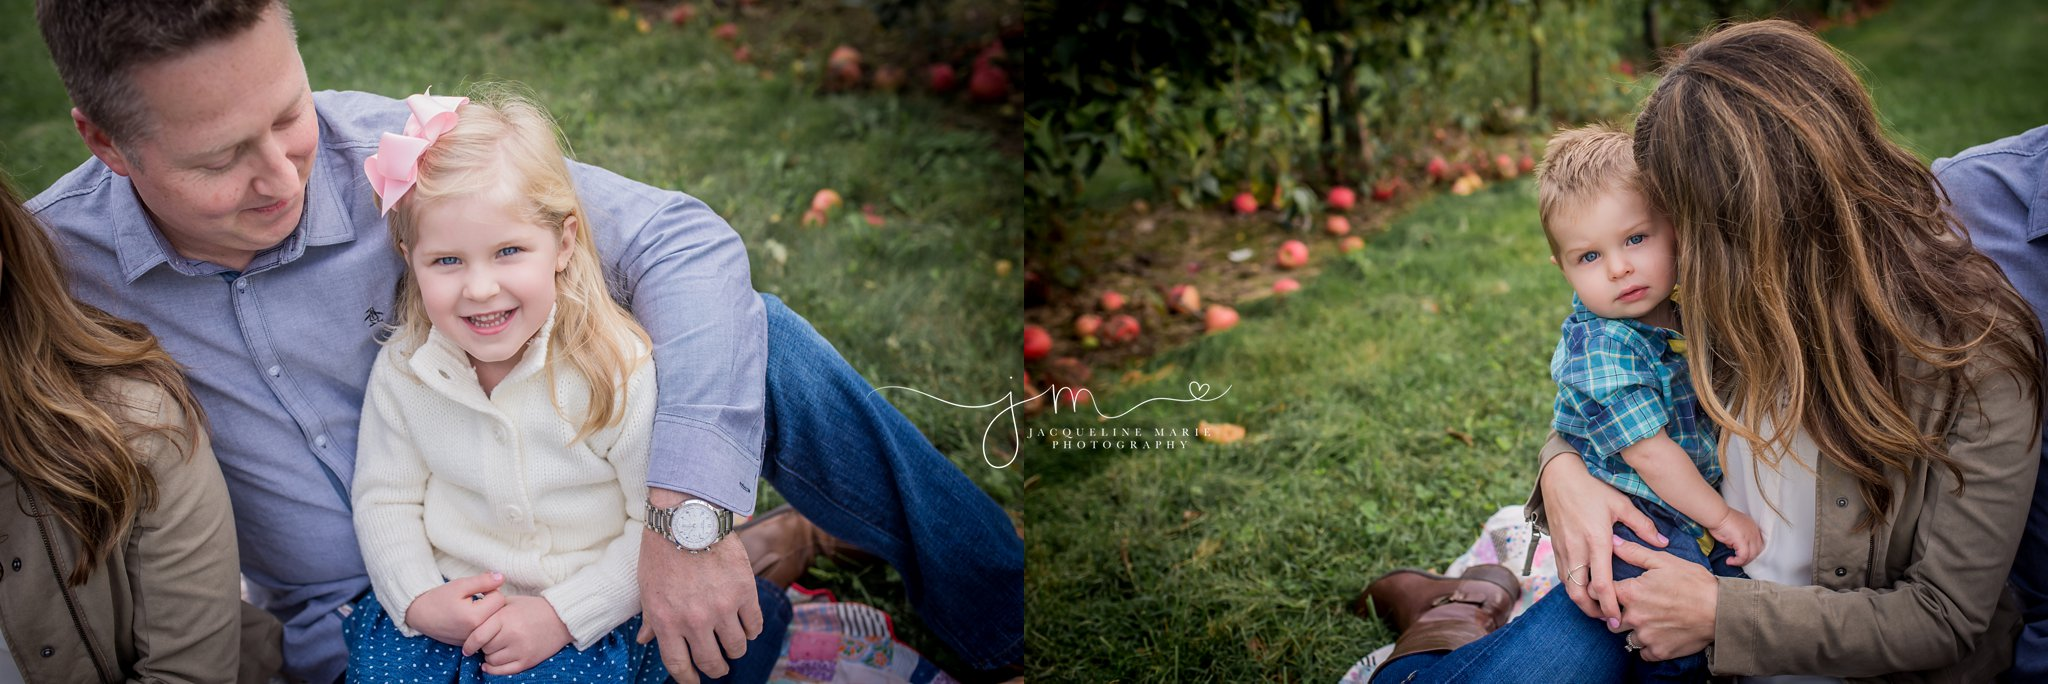 Columbus Ohio family photographer, Columbus family photography, apple orchard session, fall family portraits Columbus, Columbus Ohio photographer, parent and child pose